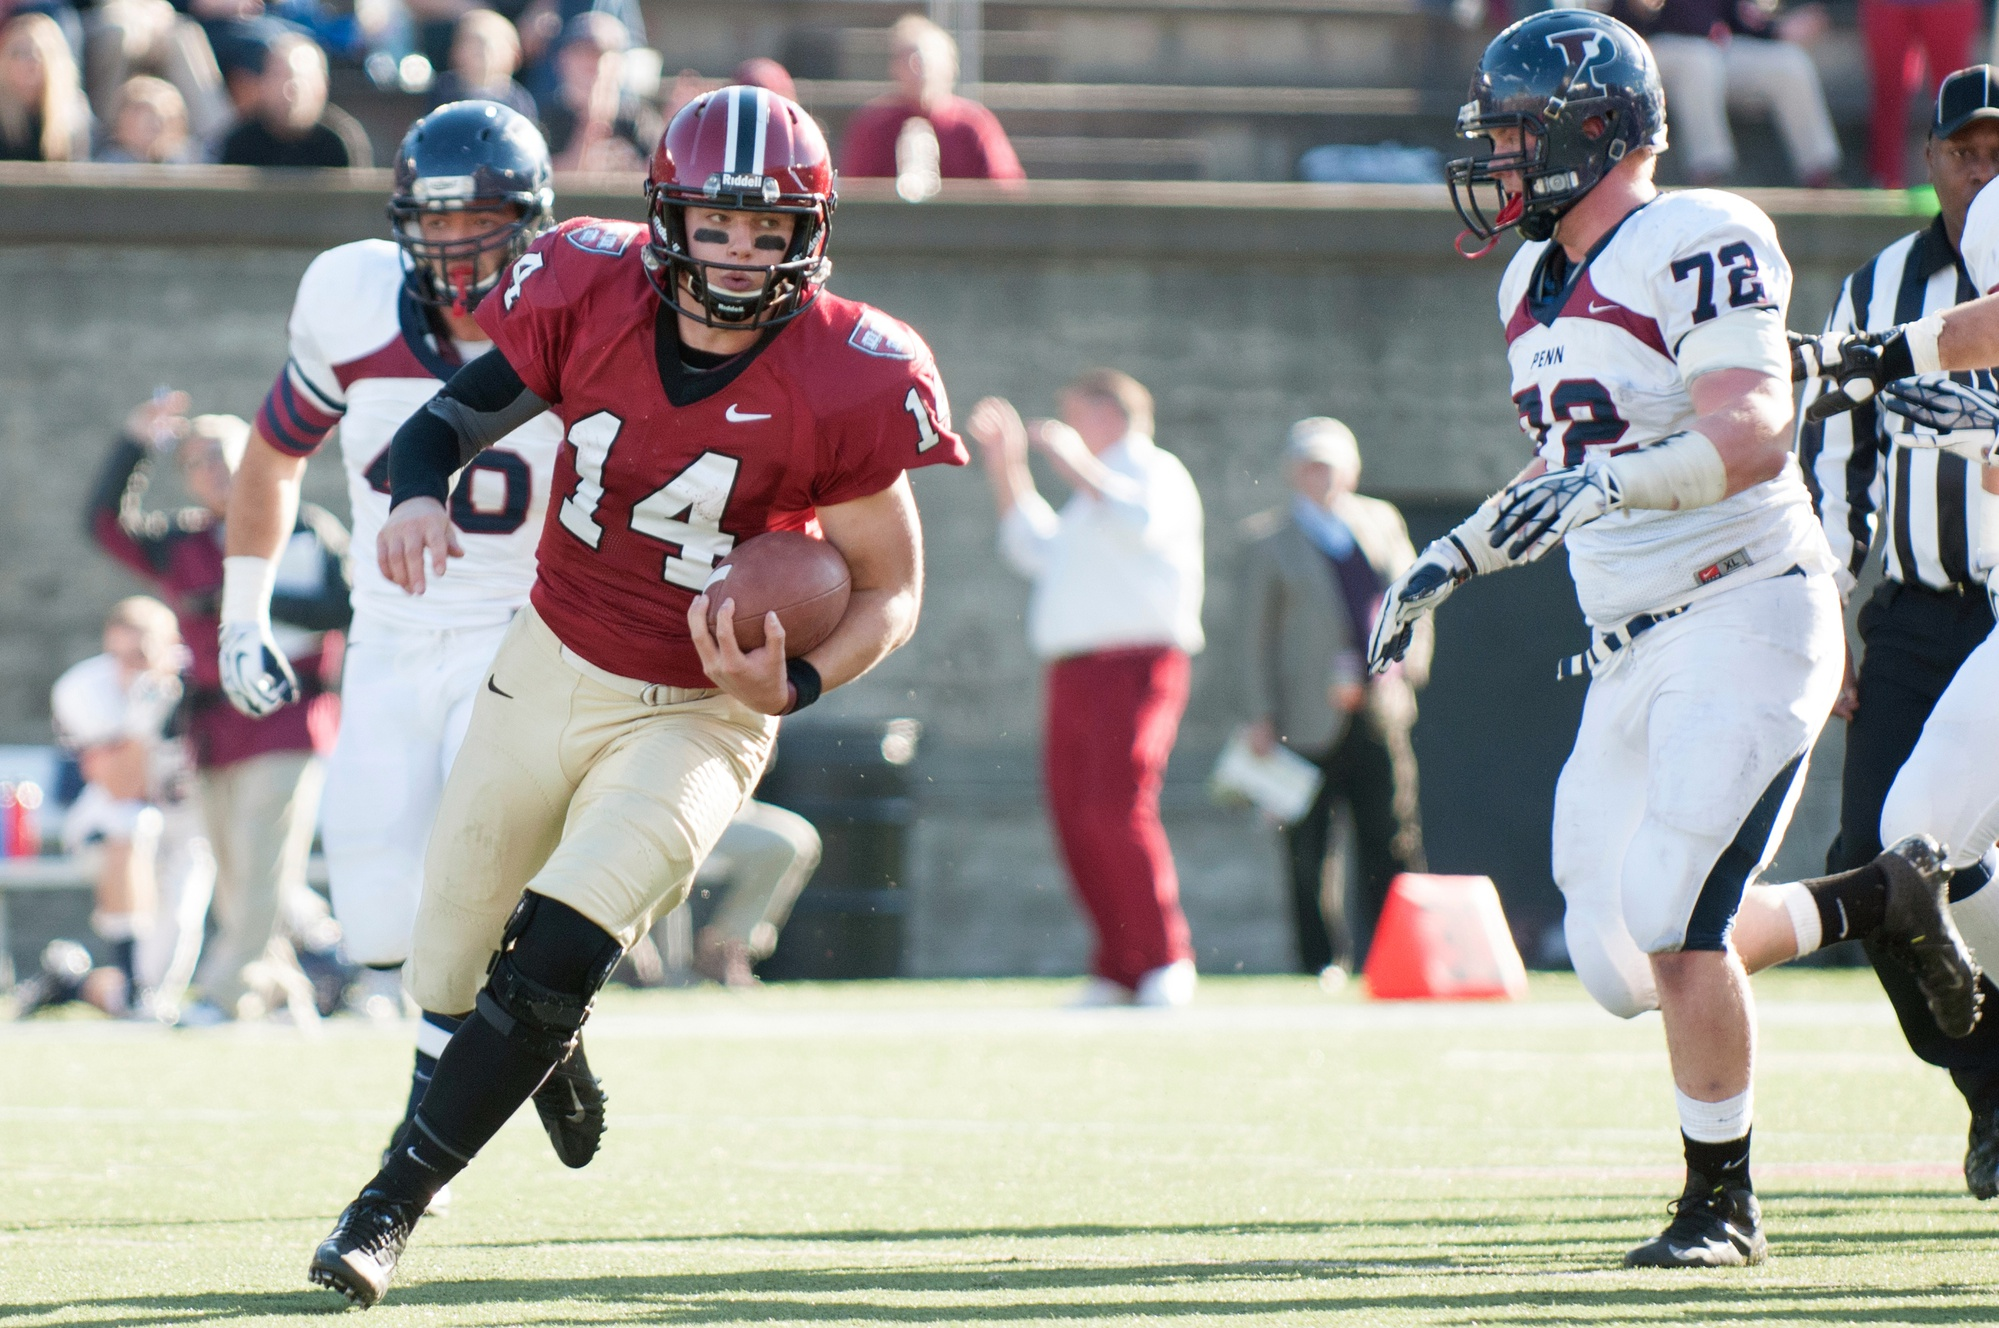 Harvard football coach Tim Murphy pulled junior quarterback Conner Hempel early in the third quarter with his team up 38-0. Hempel would return to the game, however, as Penn stormed back with 30 unanswered points, ultimately losing to the Crimson 38-30.